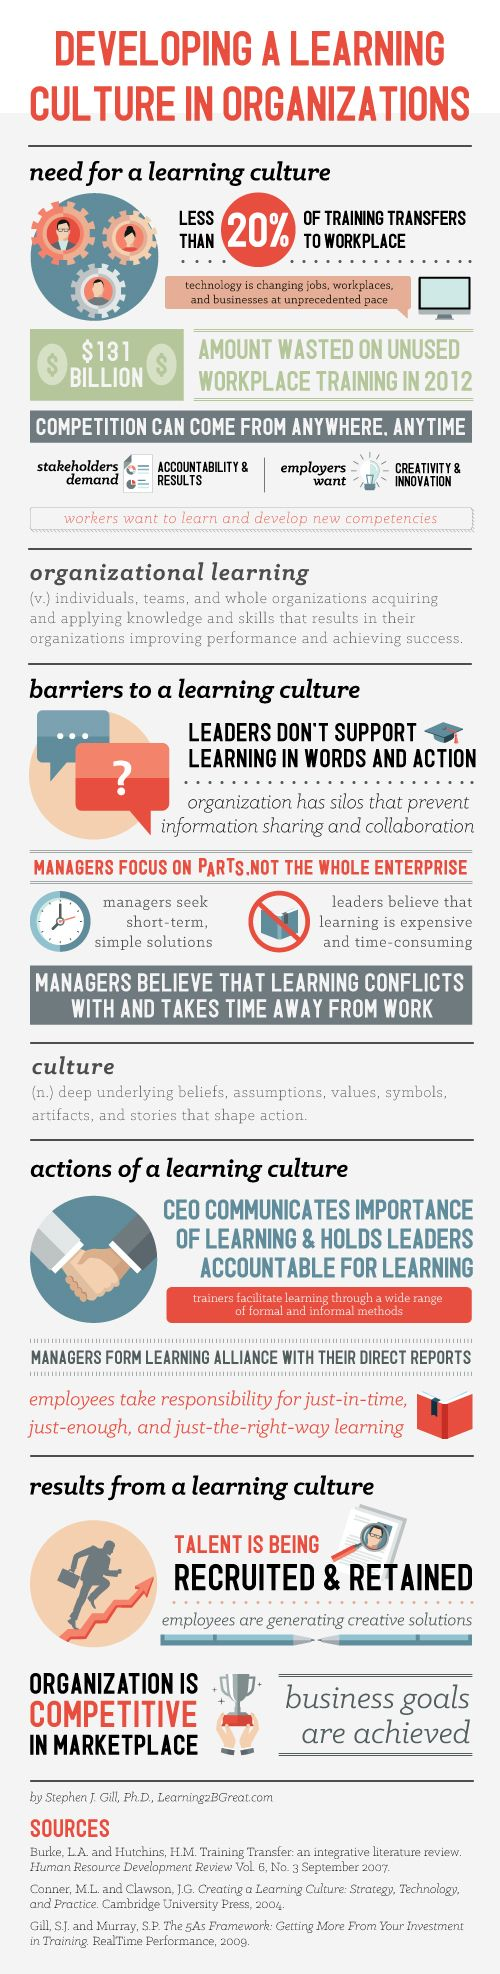 Developing a Learning Culture Infographic